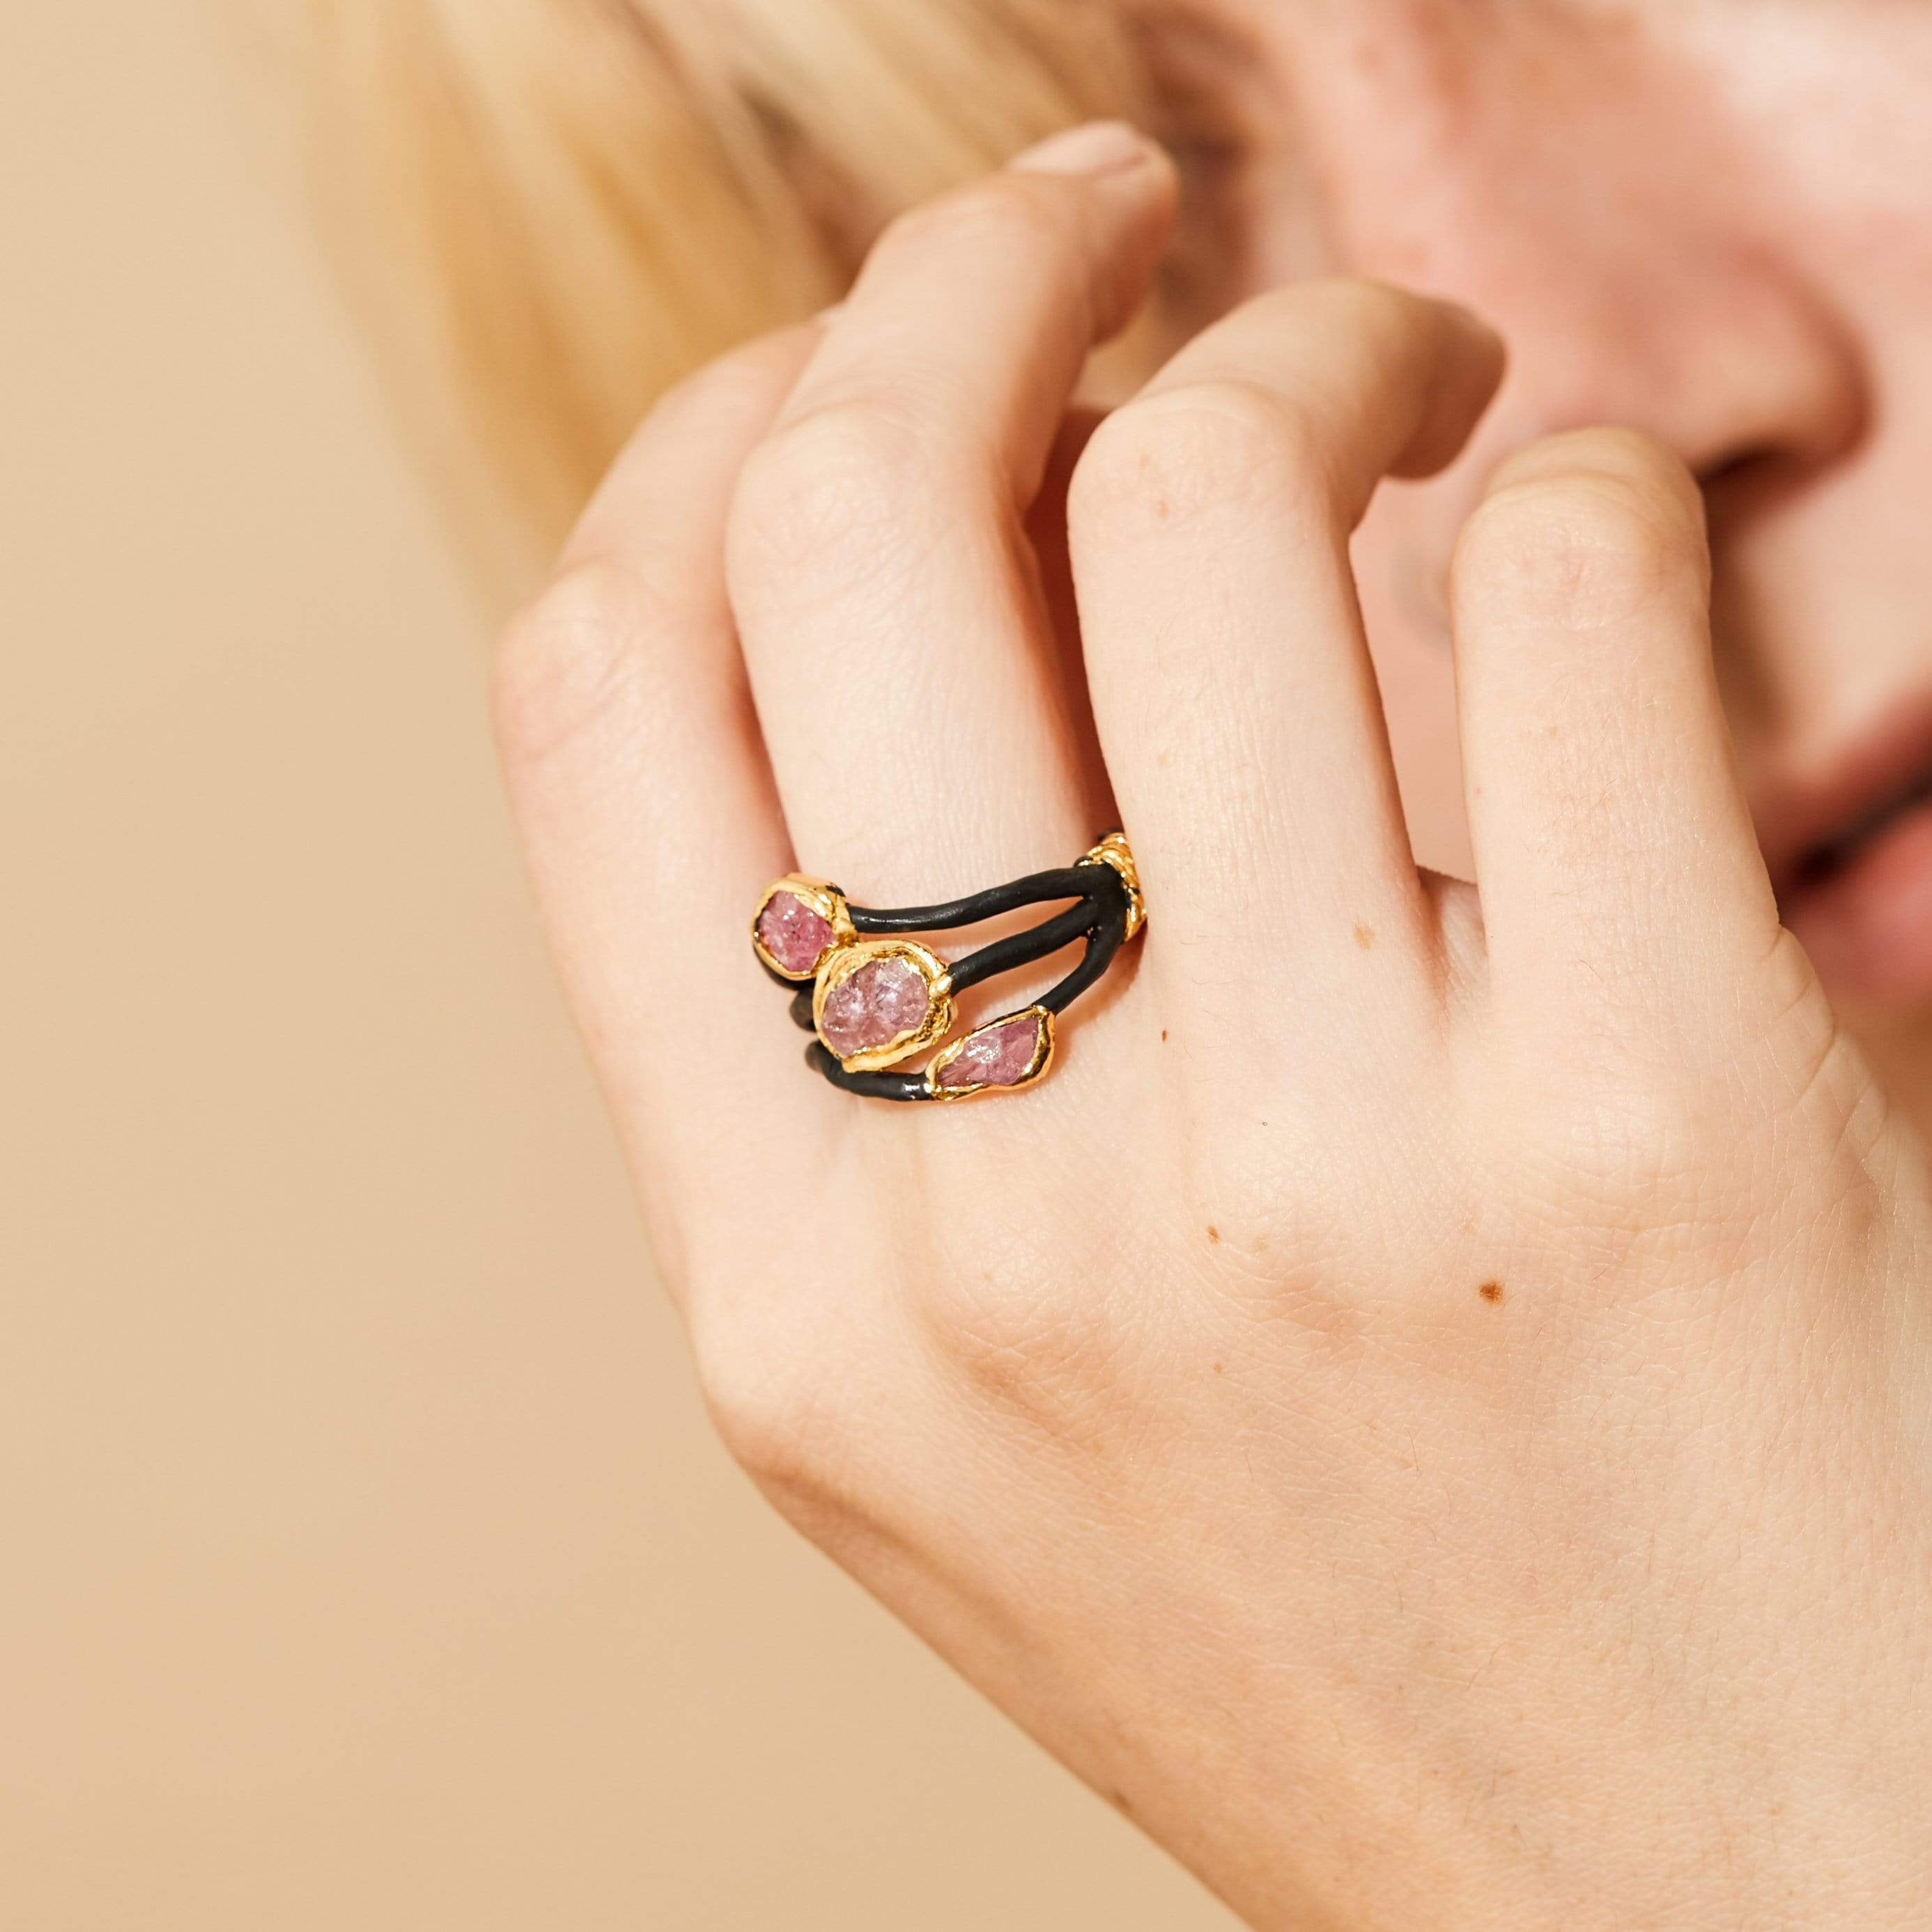 Dareene Ring, Anthracite, black, Gold, Handmade, Ruby, spo-disabled, StoneColor:PastelColor, StoneColor:Pink, Style:Delicate, Type:BlackAnthracite, Type:StoneCandyDelicate Ring